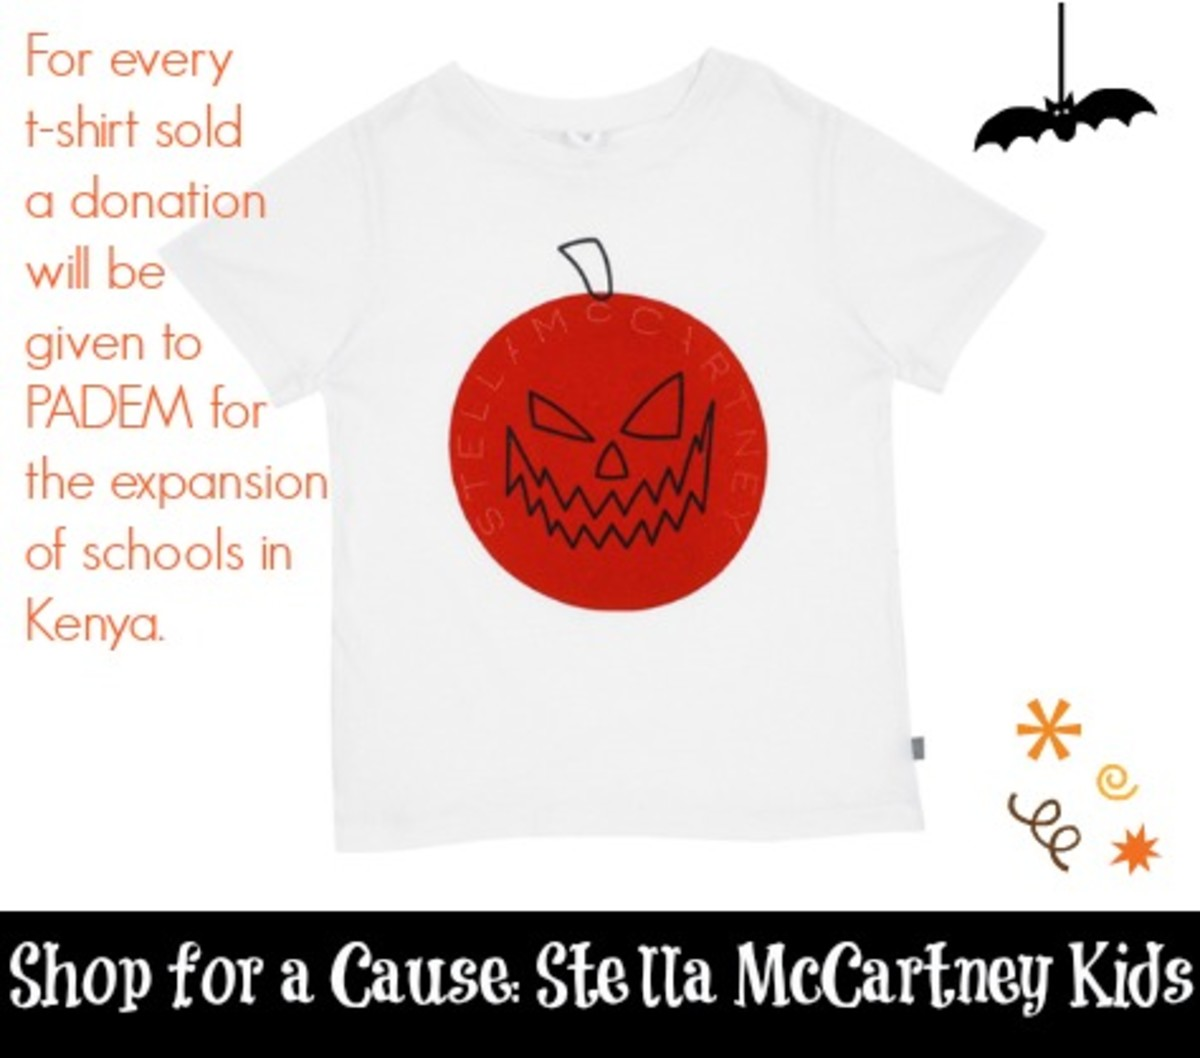 shop for a cause, stella mccartney kids, PADEM charity, halloween tee for kids